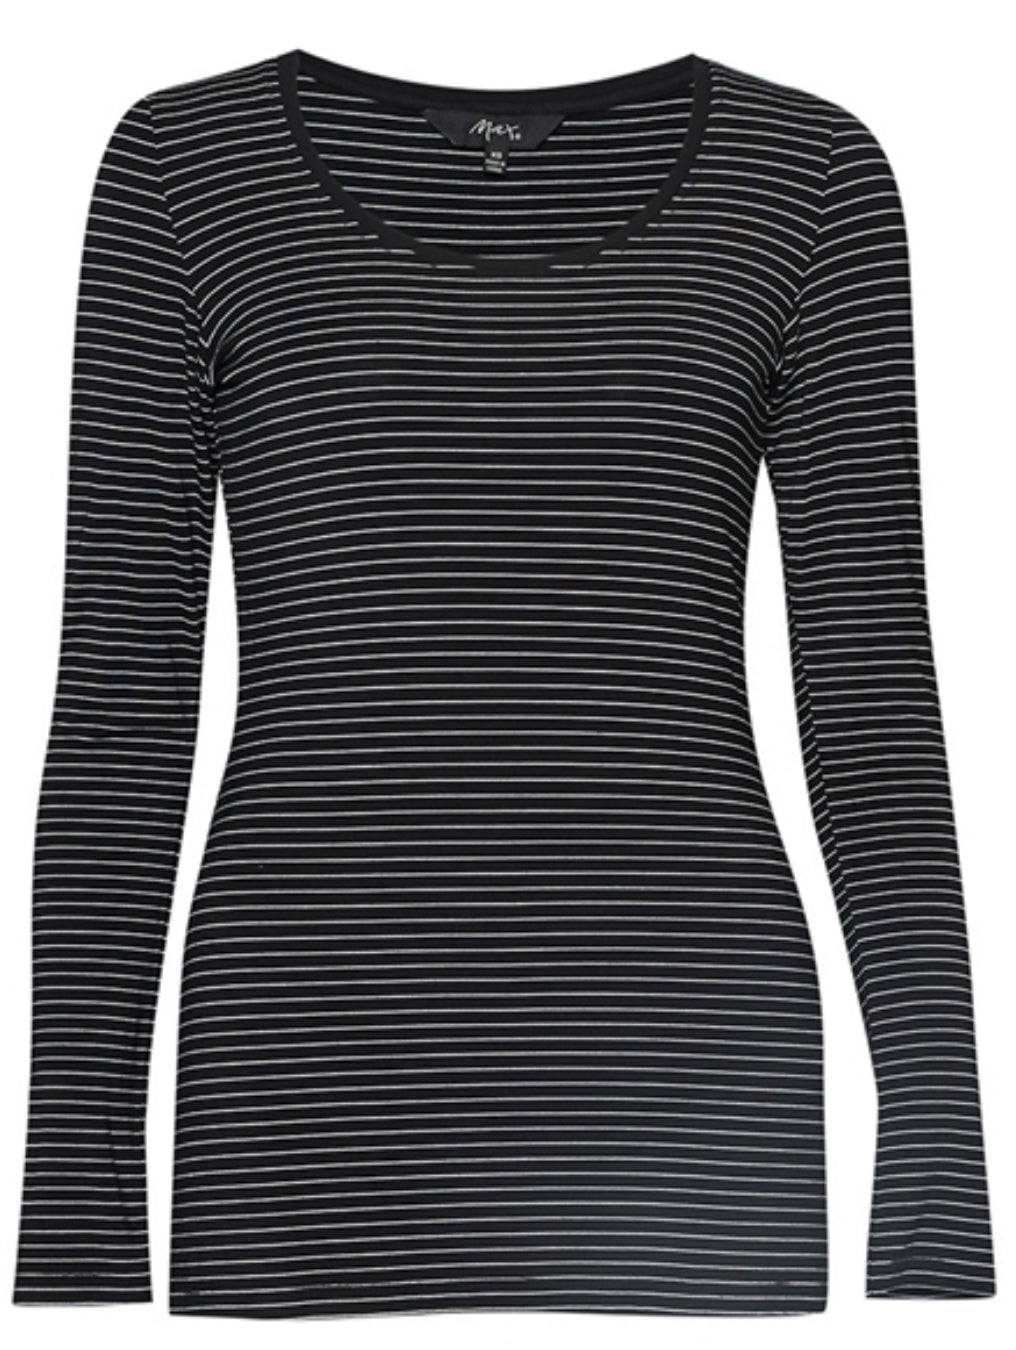 Max - Striped layering long sleeve top